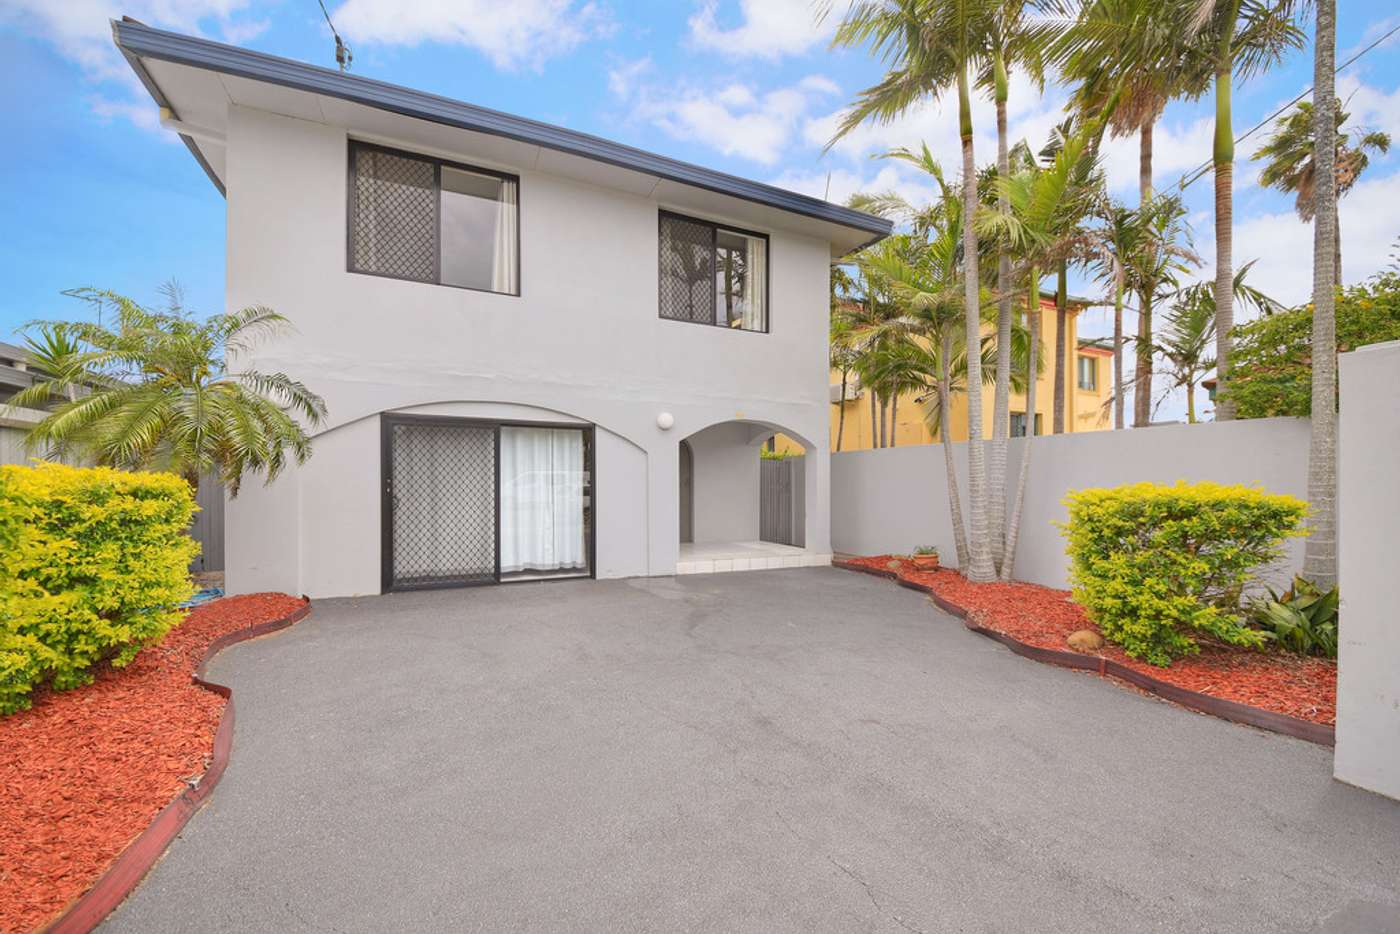 Main view of Homely house listing, 15 Sunbrite Ave, Mermaid Beach QLD 4218